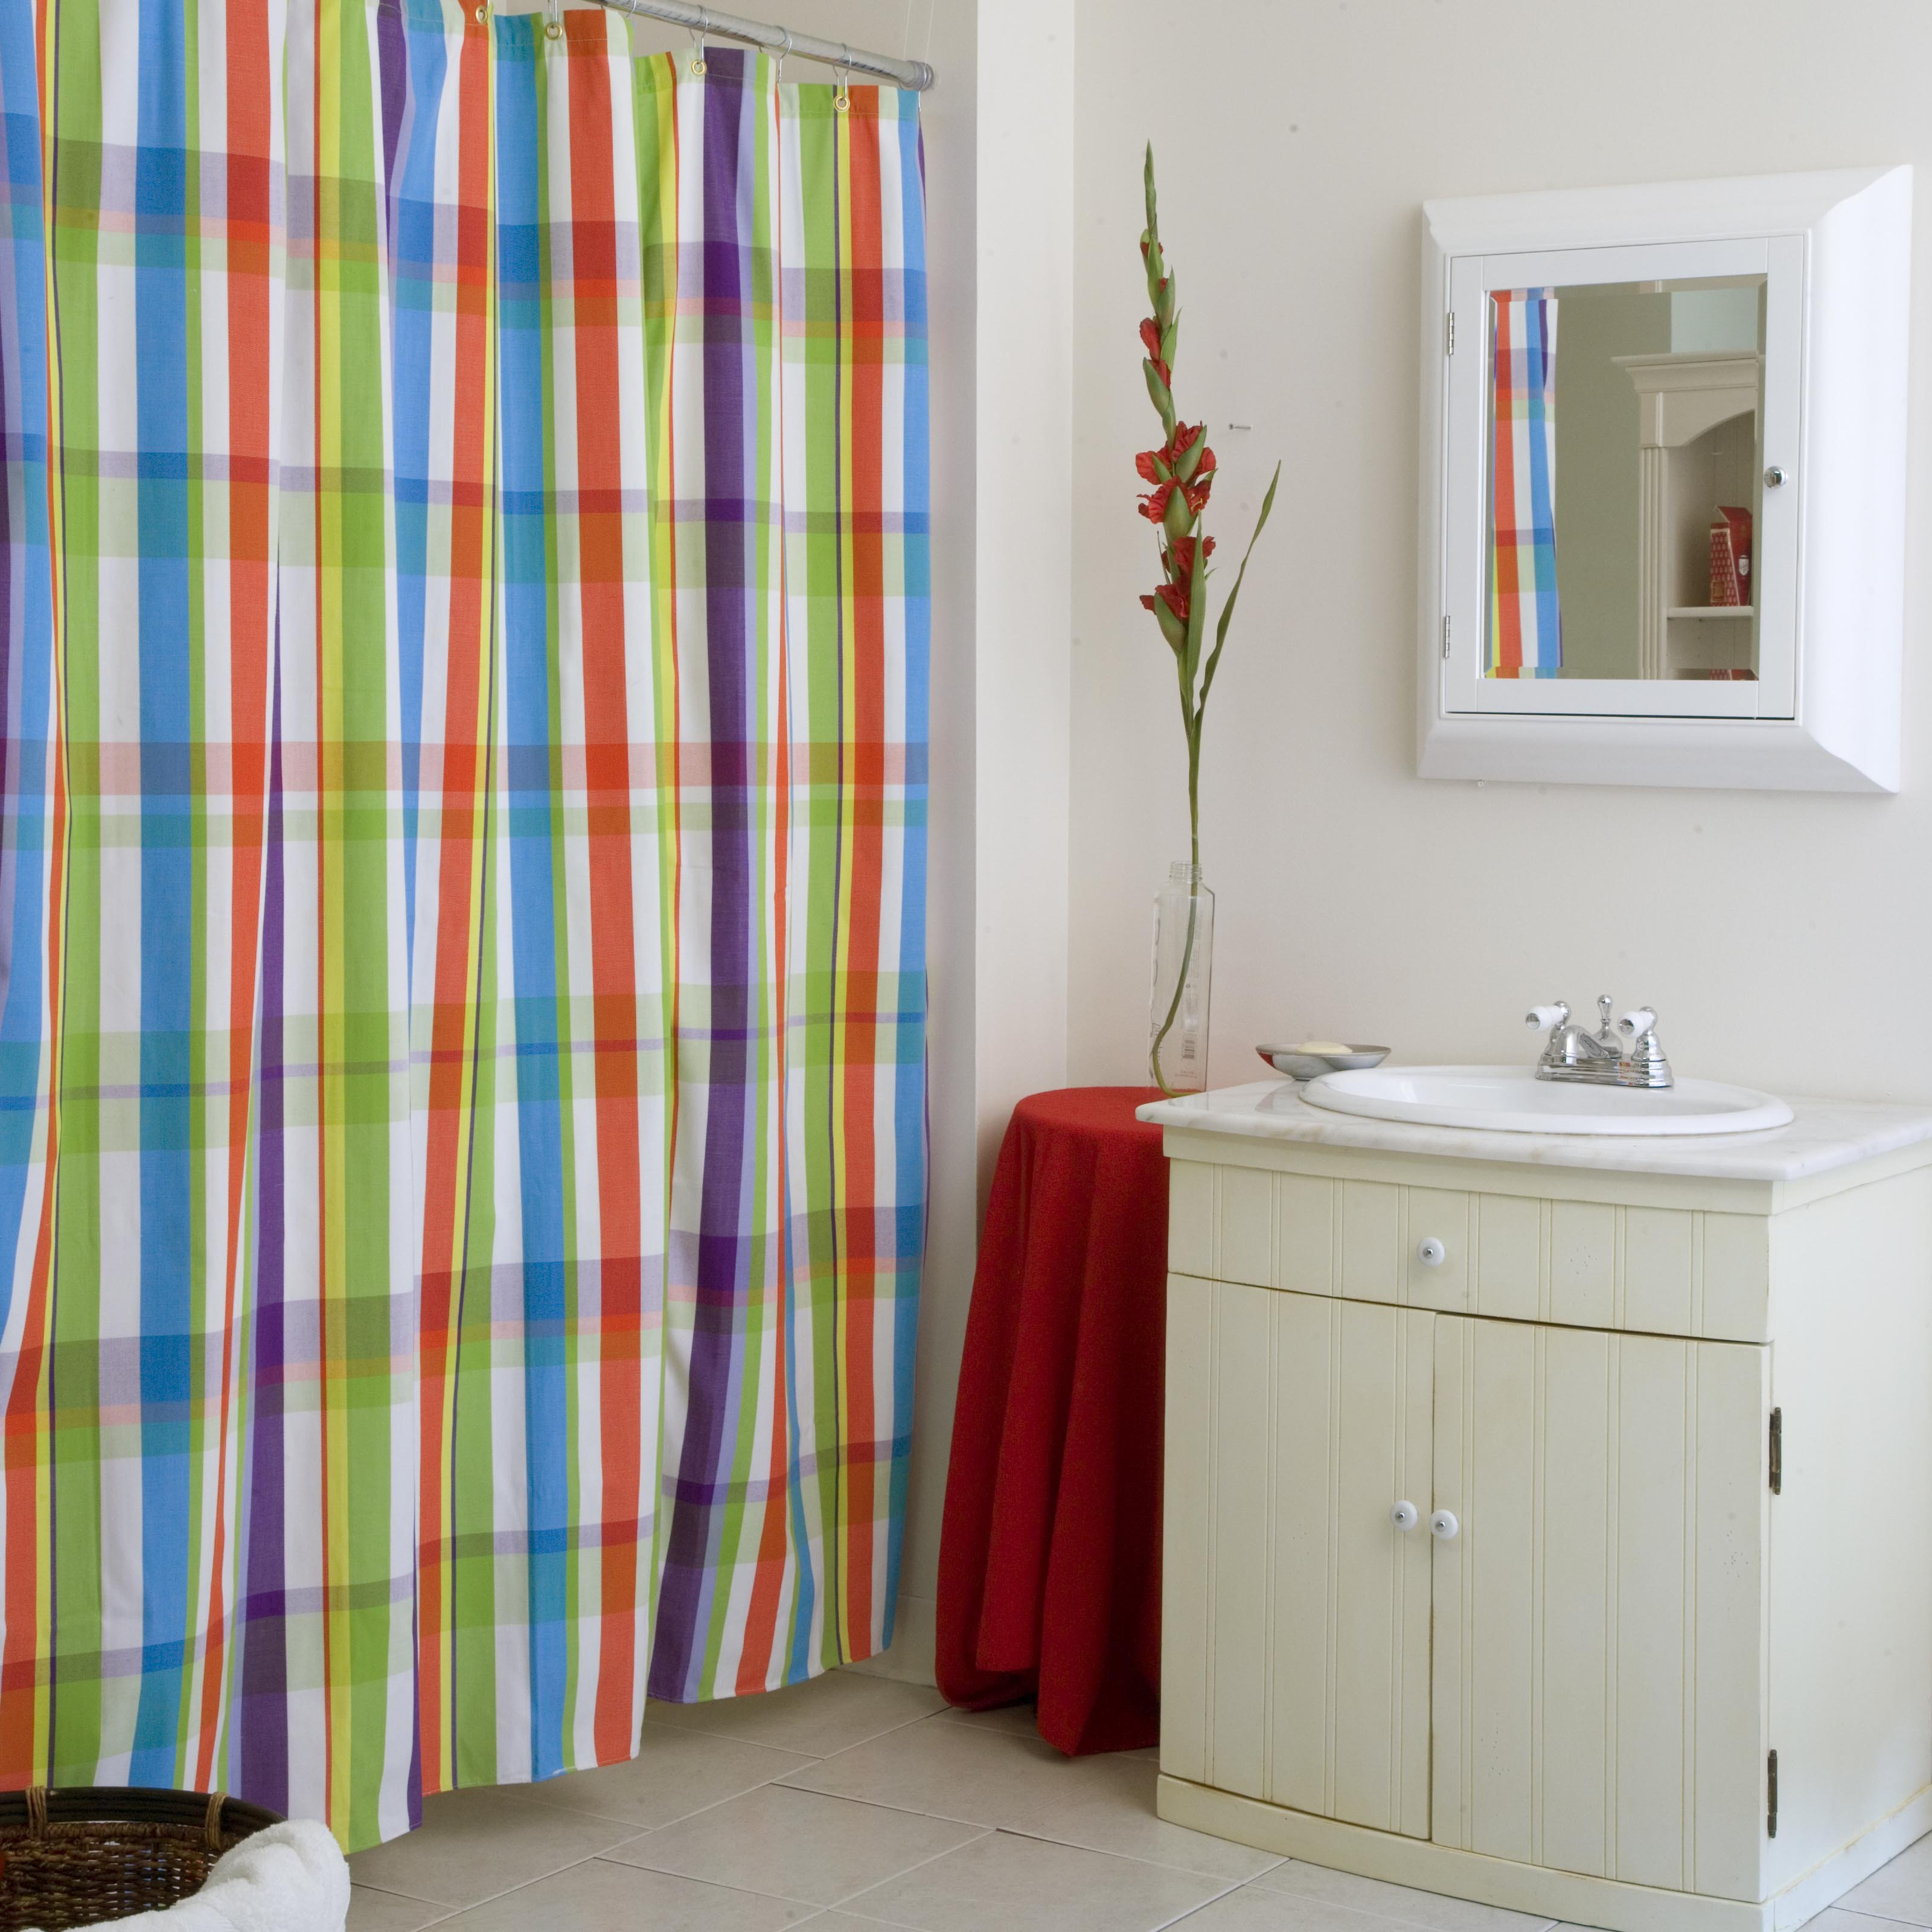 Mesmerizing Colorful Striped Shower Curtains Mastermag129 Jpg Inside Size 3200 X